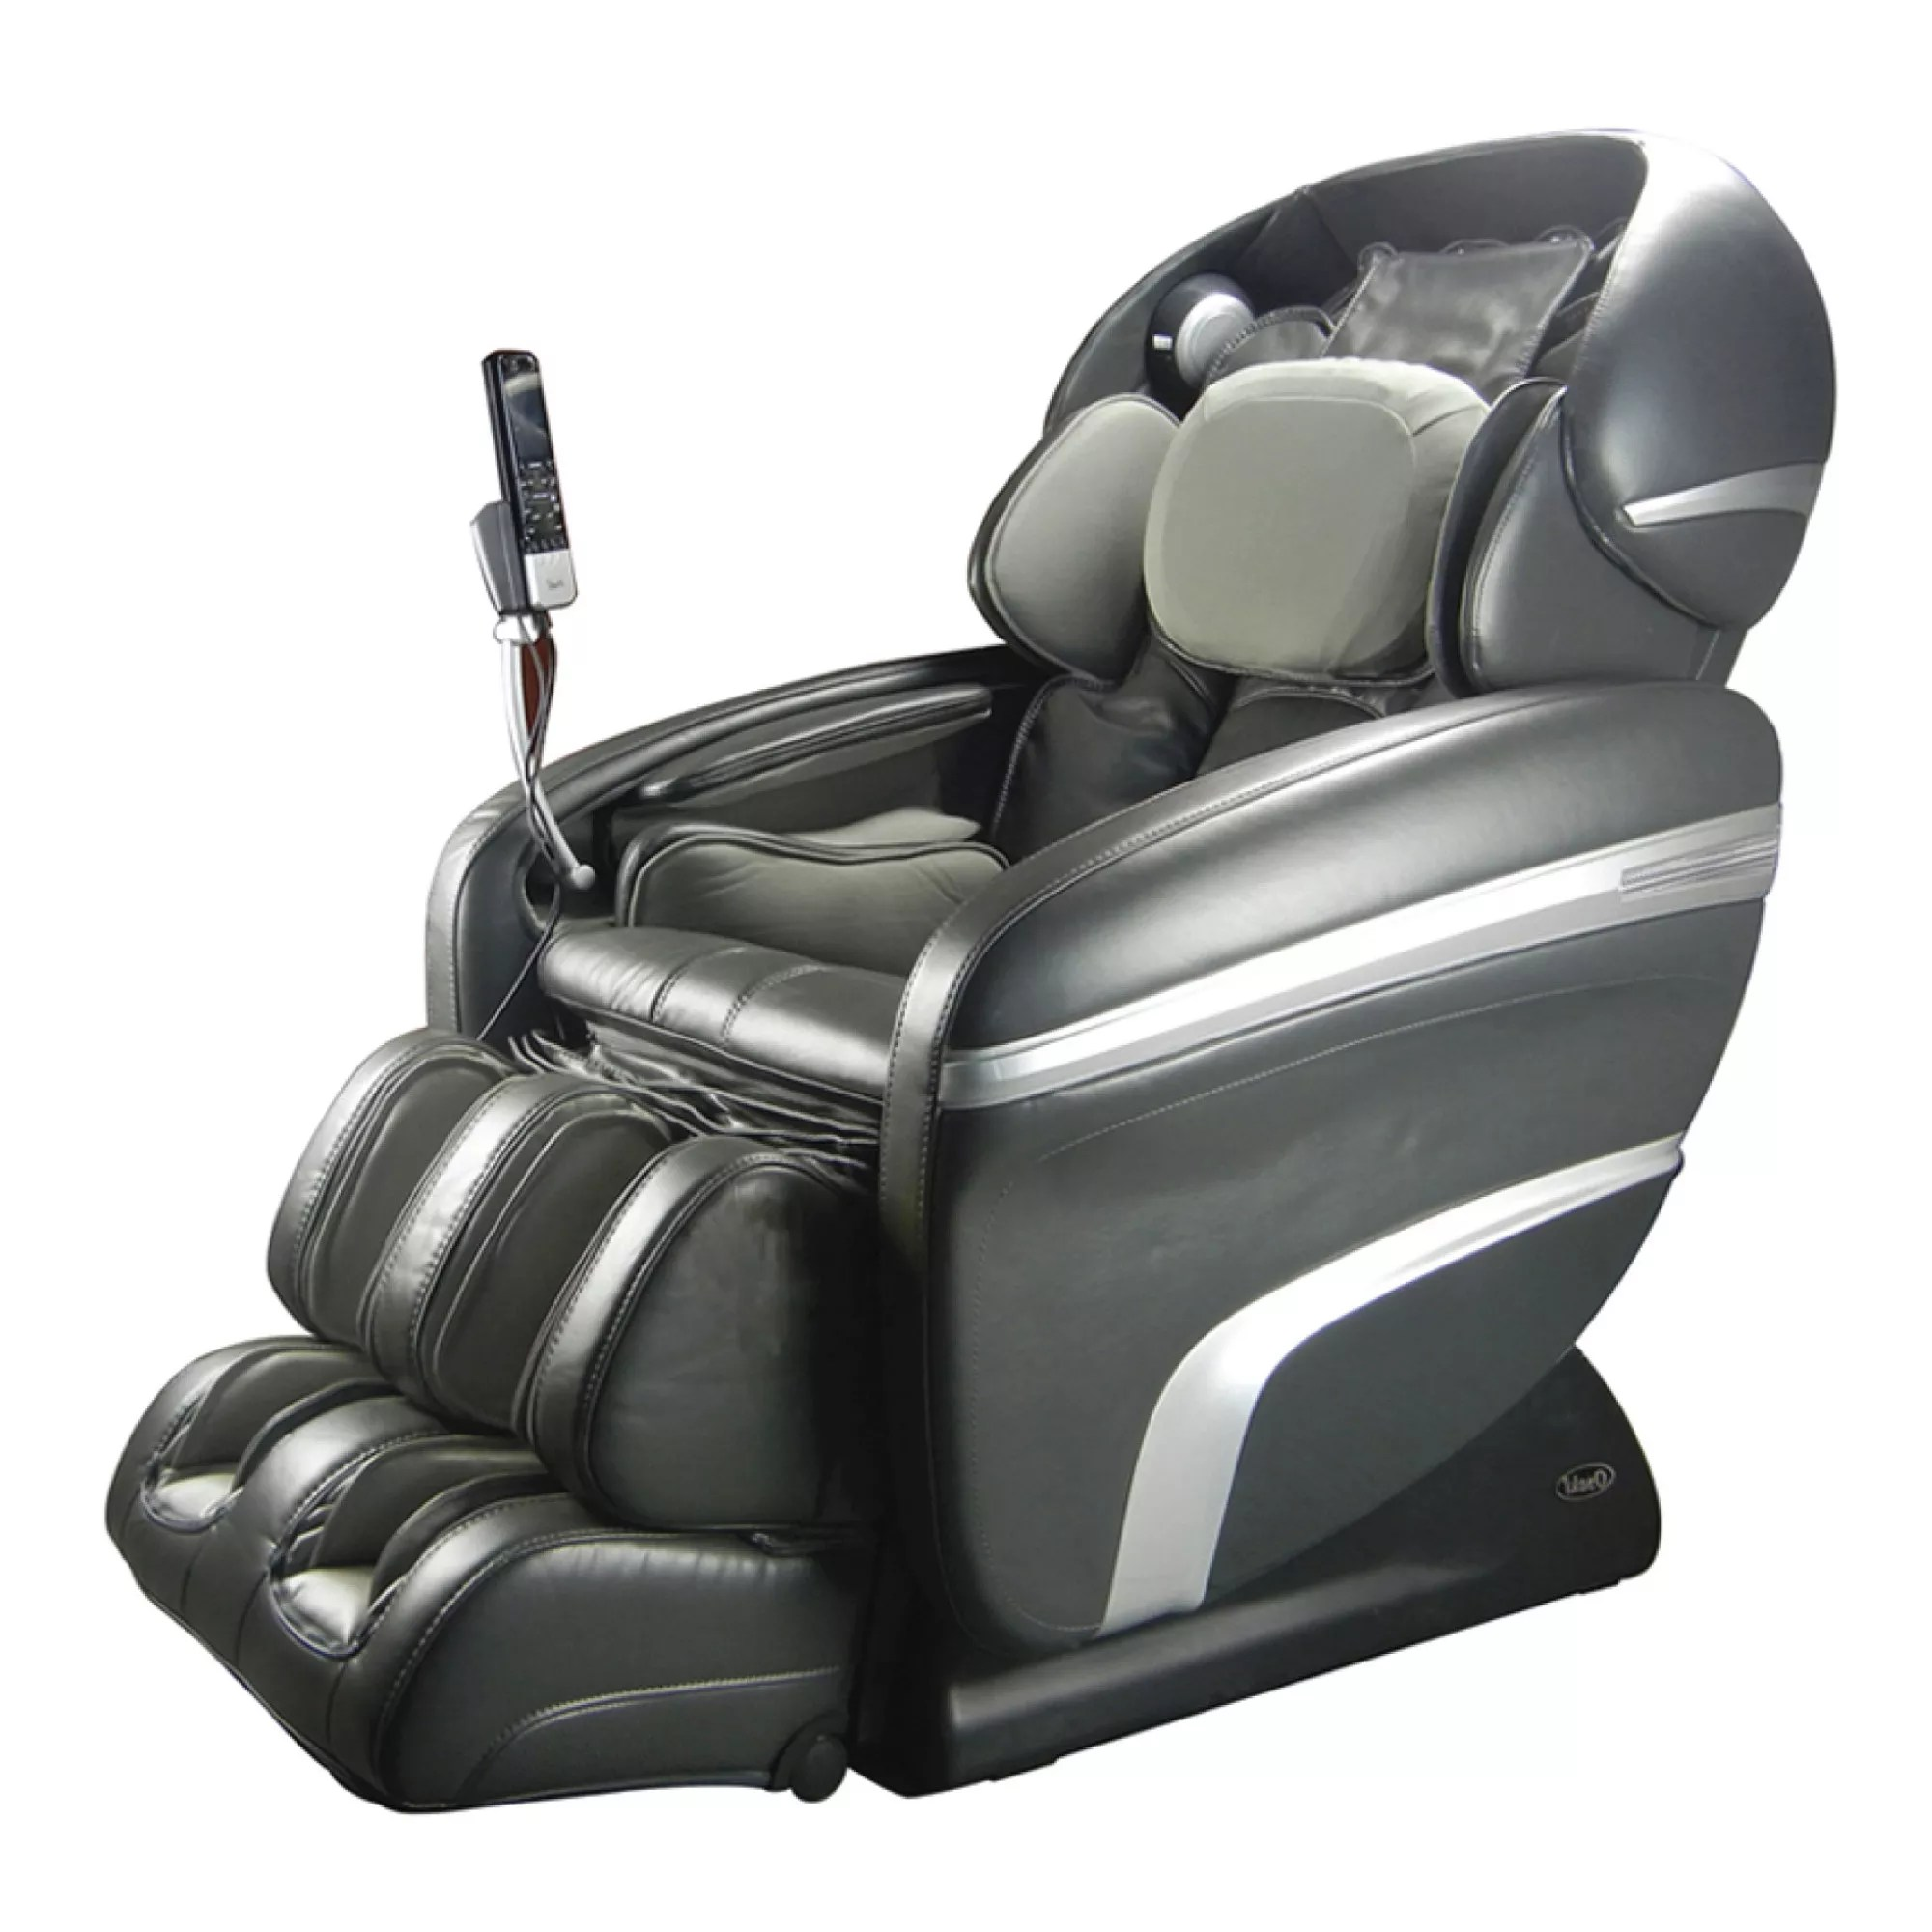 Osaki Massage Chairs Osaki 7200cr Massage Chair Charcoal